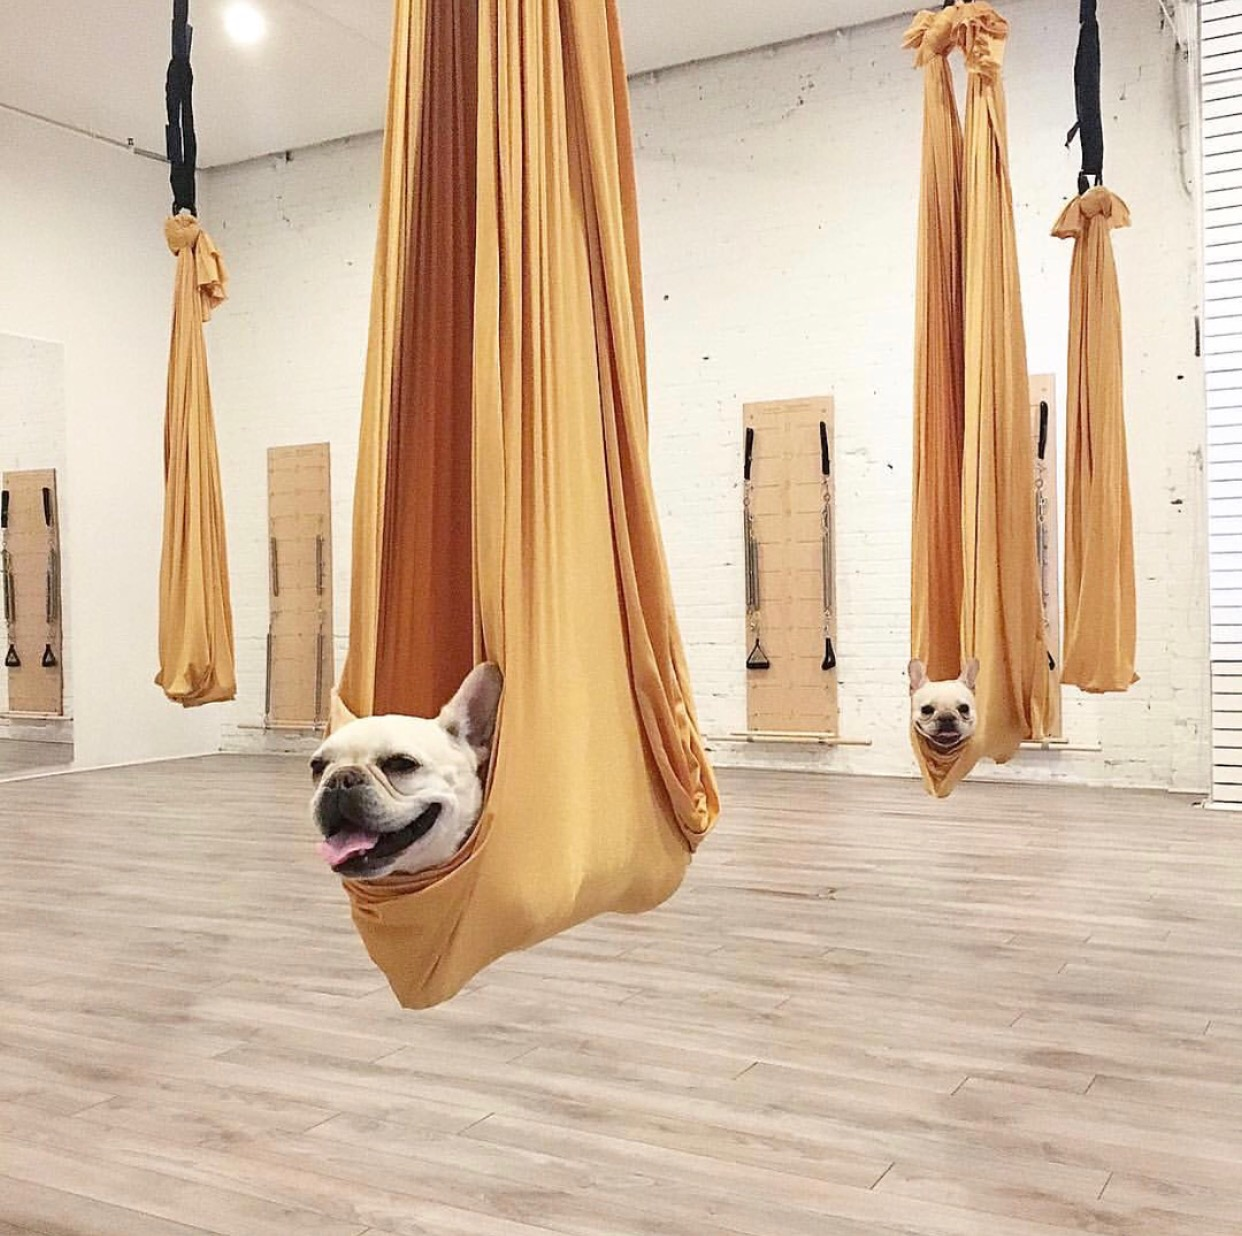 Aerial Yoga Was Not For Me